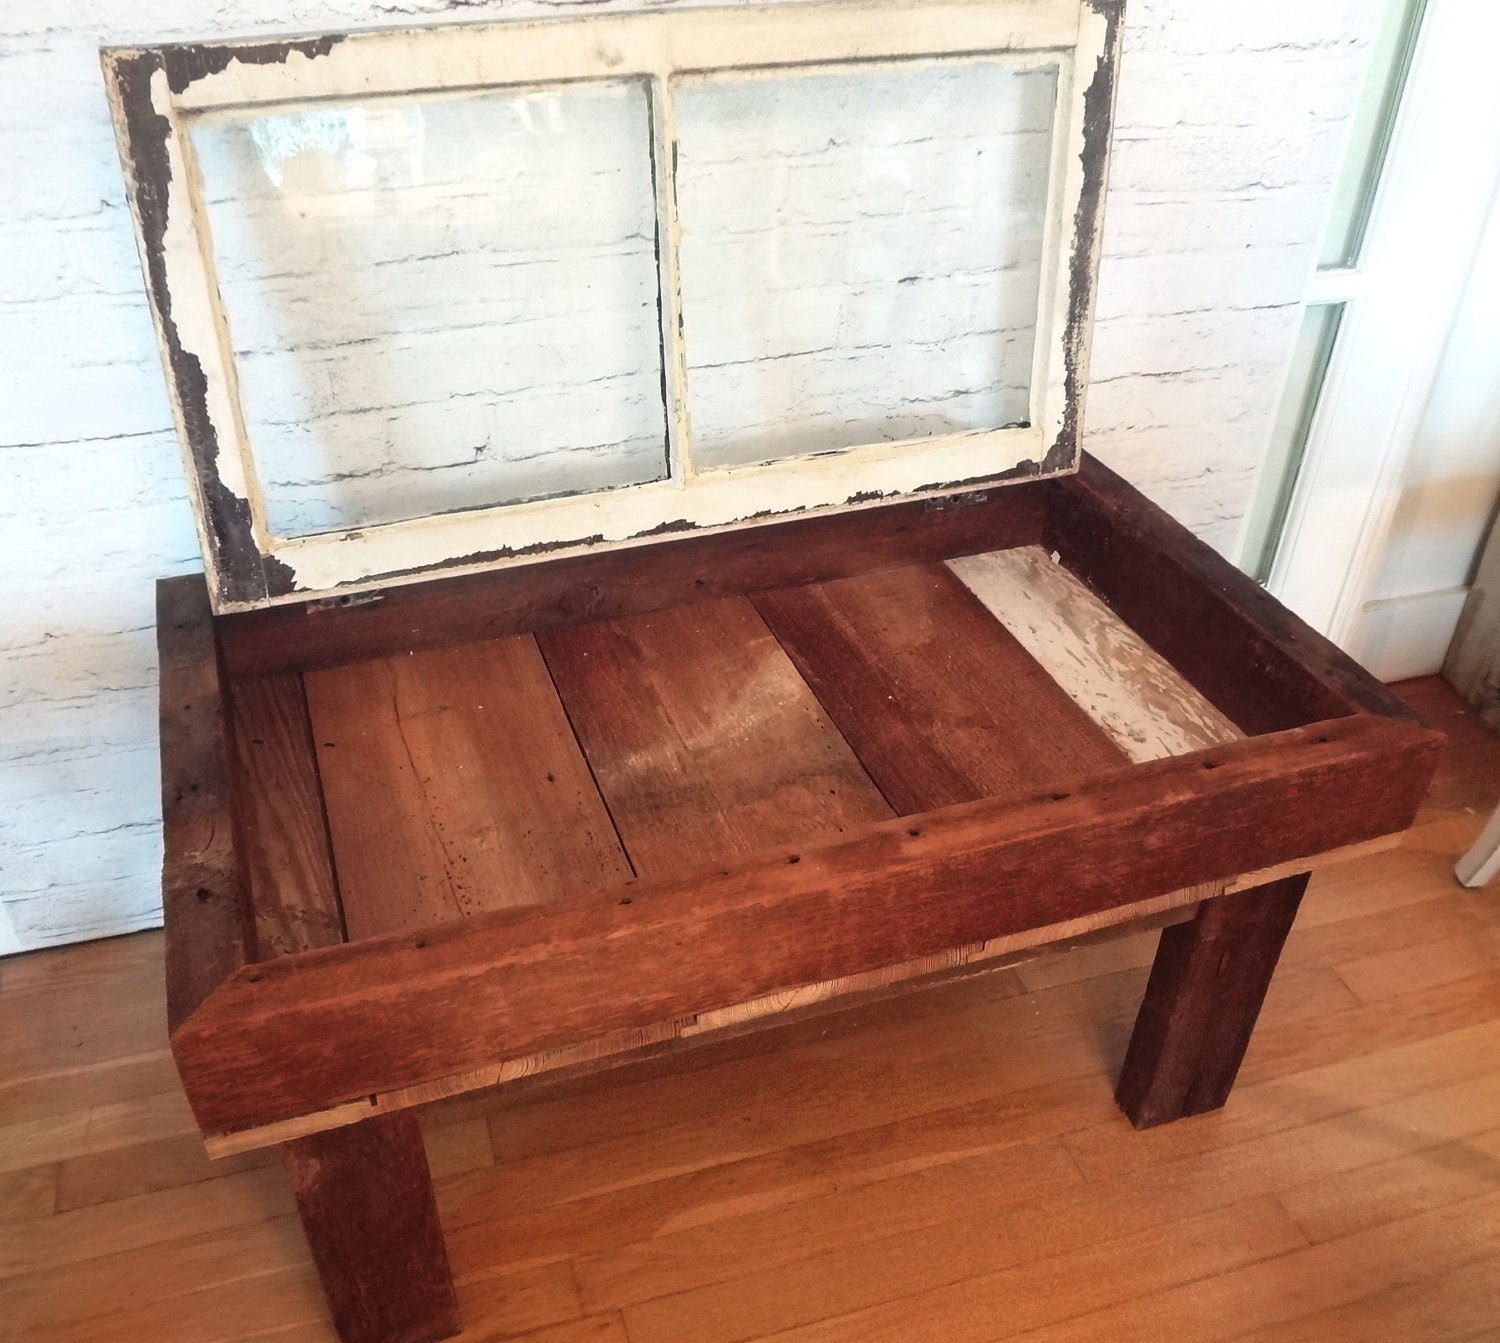 Handmade Rustic Antique Window Shadow Box Coffee Table